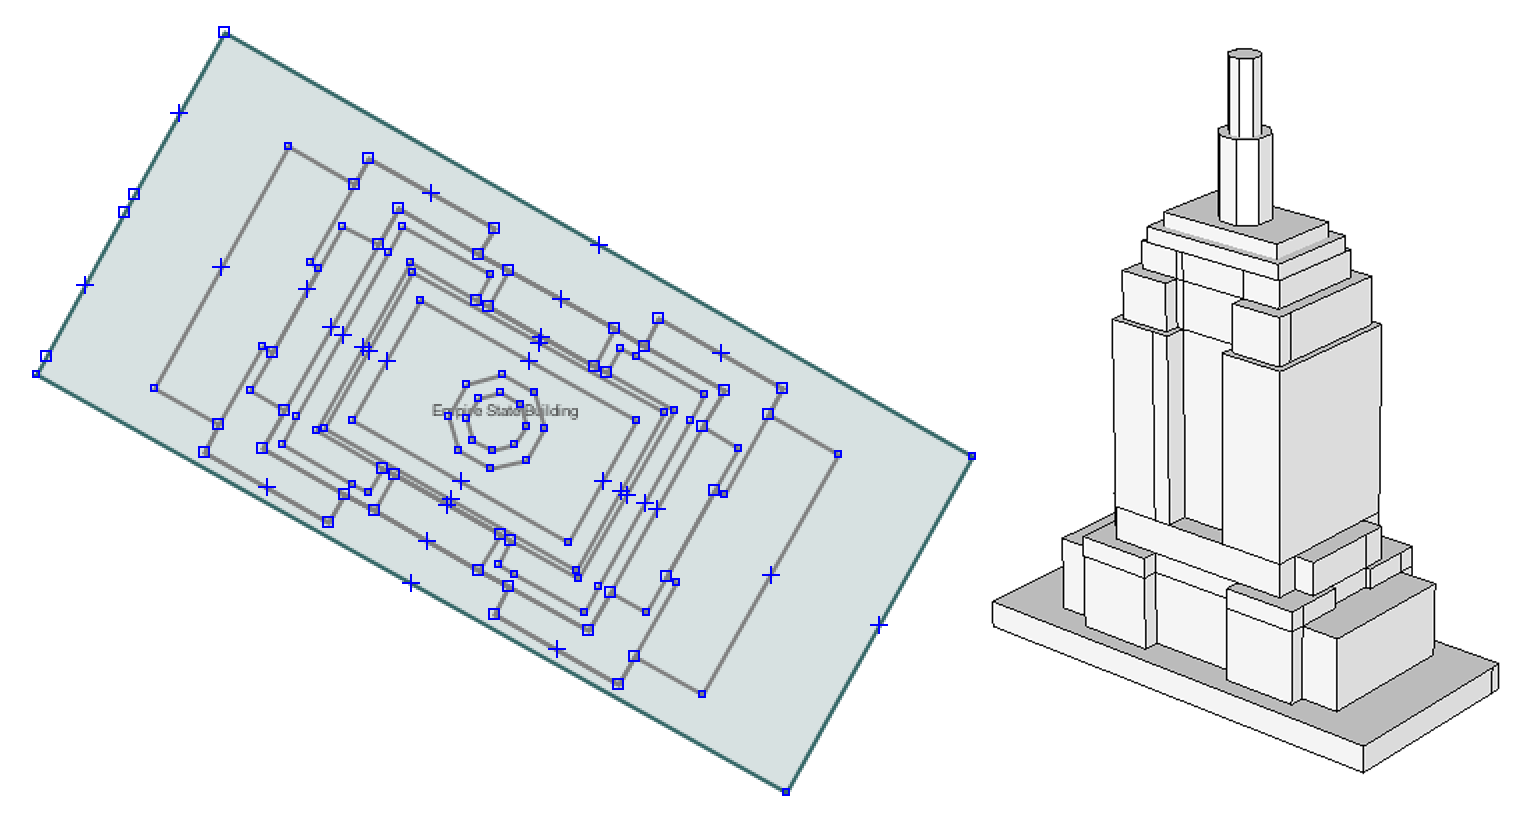 Drawn building dimensional State Building vector Mapzen ·